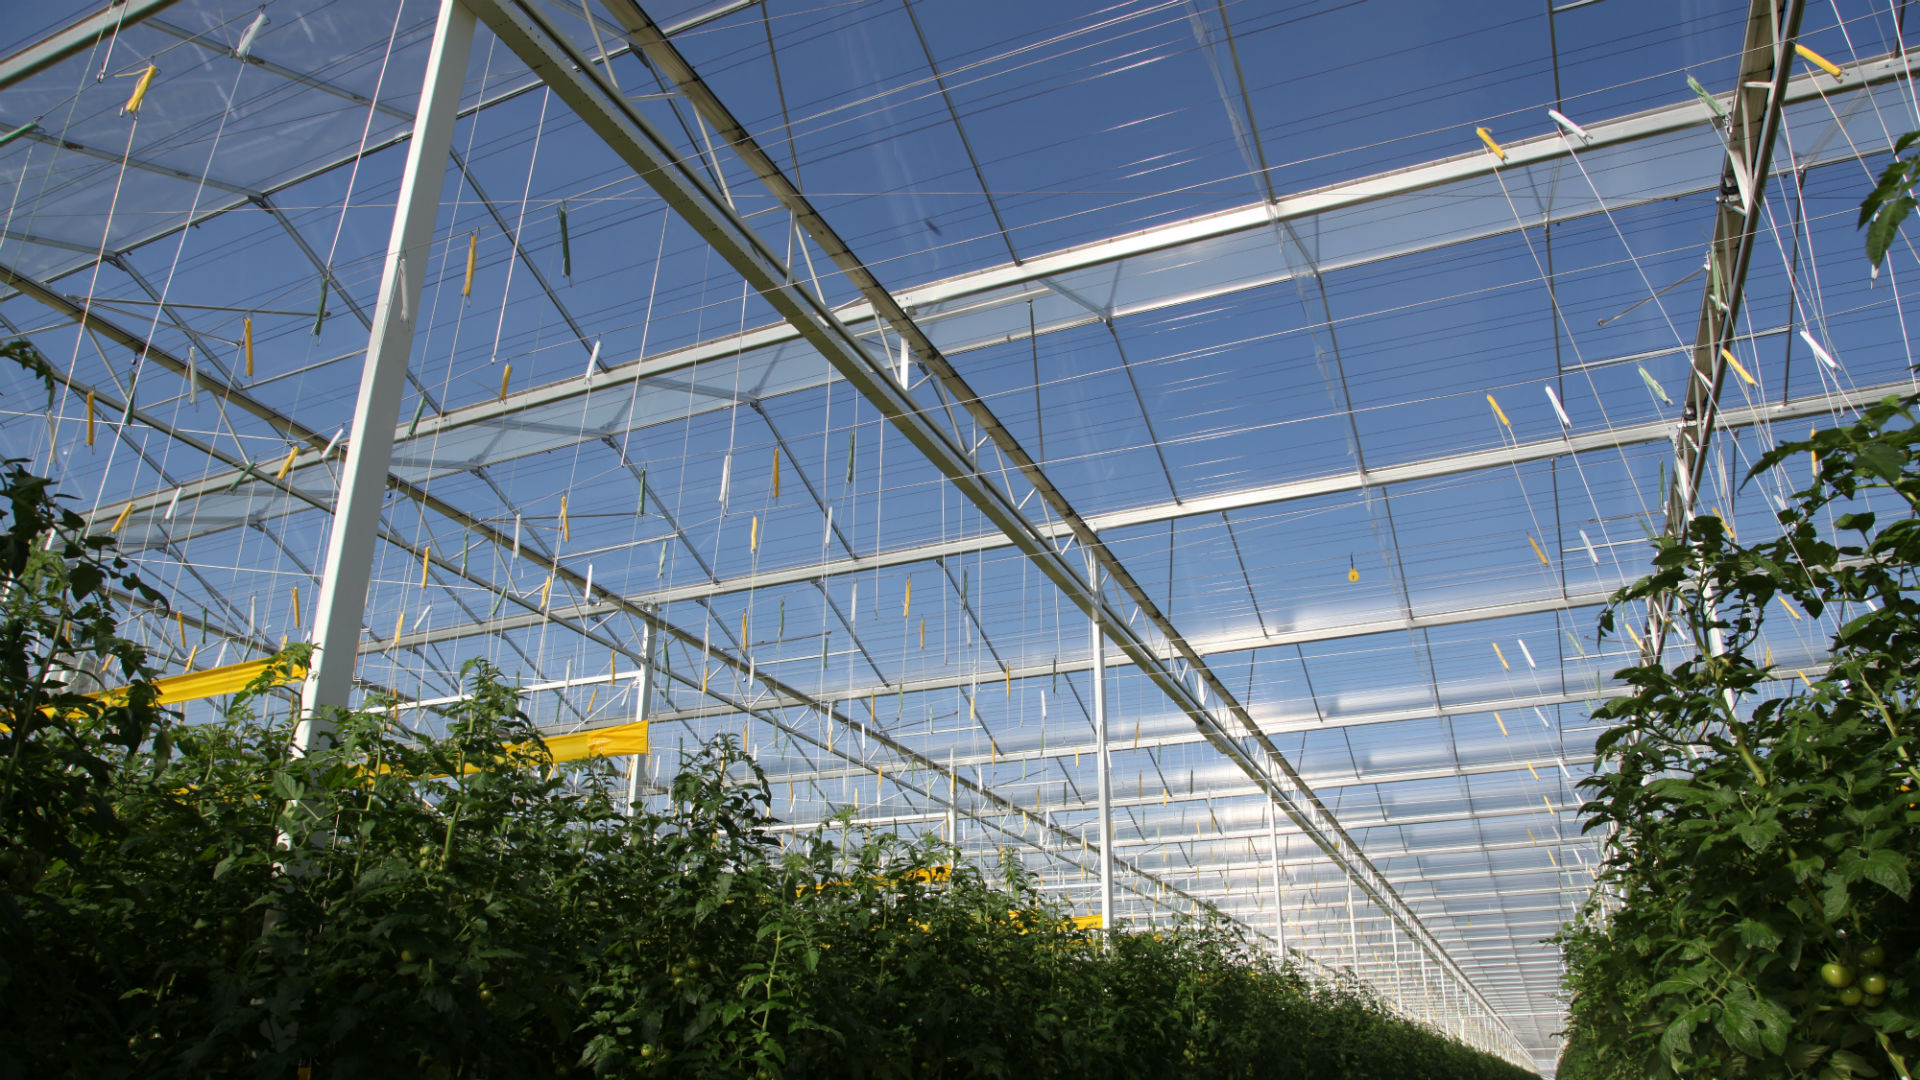 Steel greenhouse structure | Alcomij